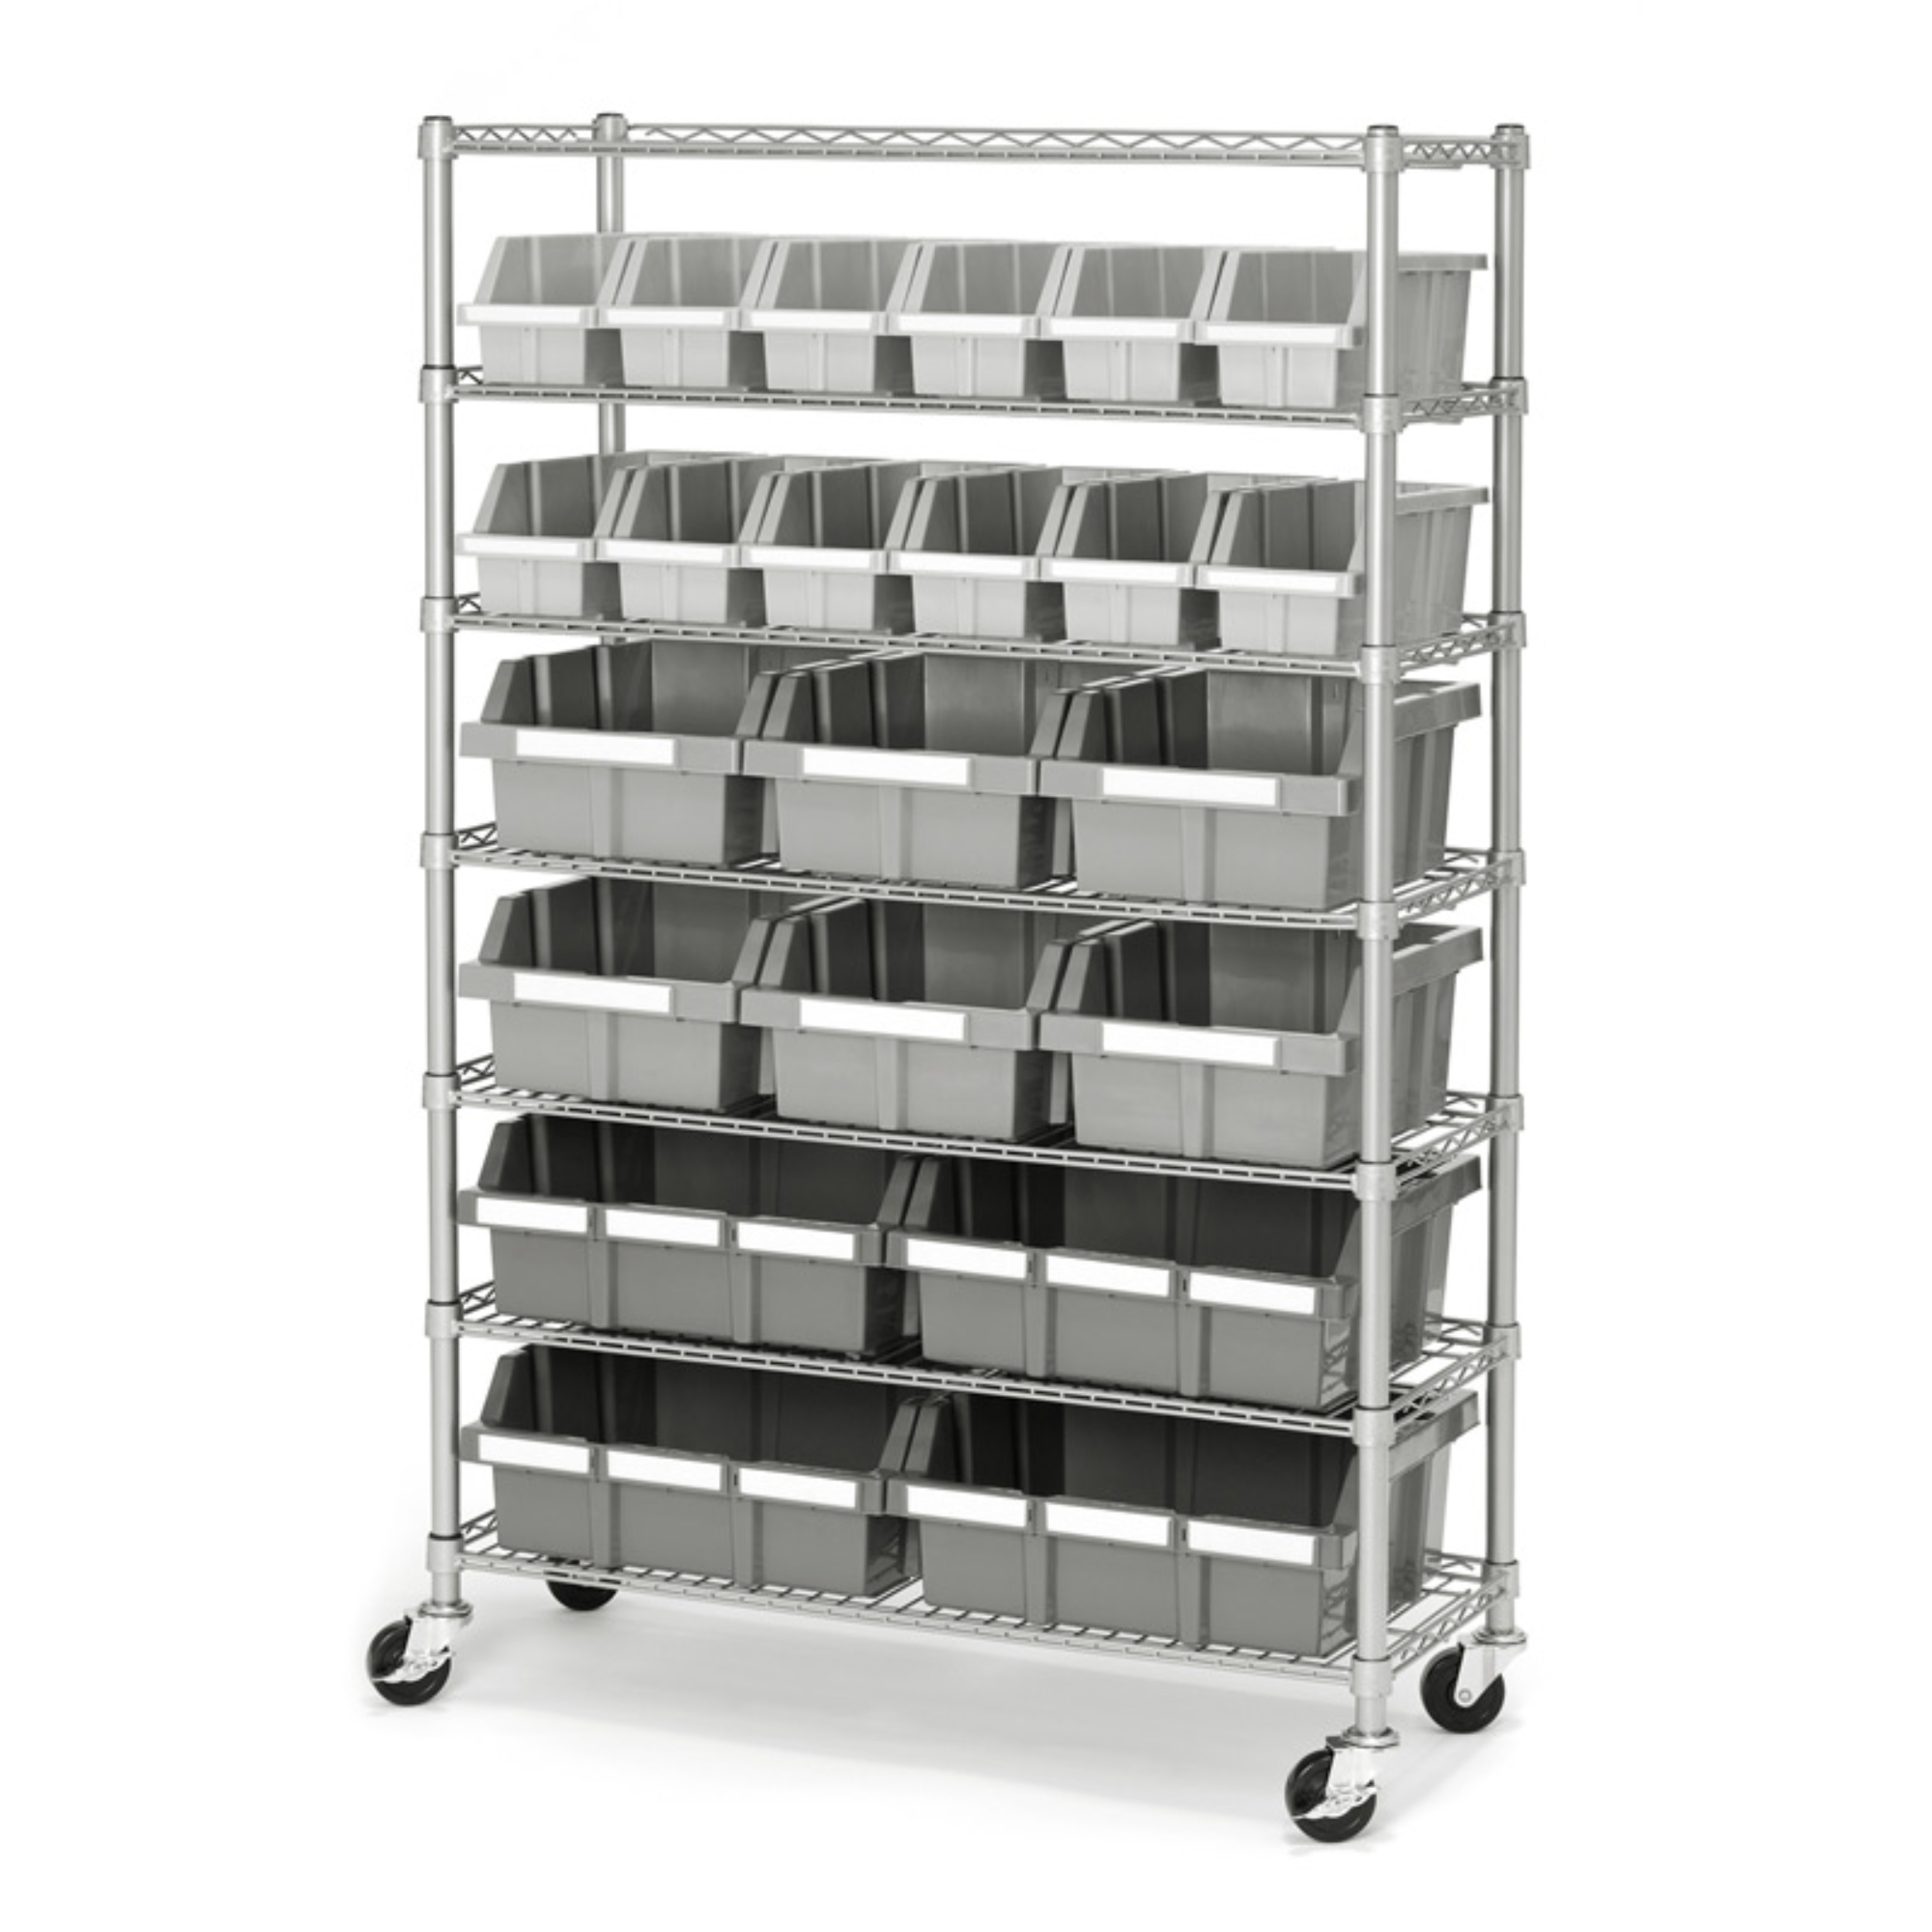 Commercial Platinum/Gray 7-Shelf 22-Bin Rack Storage System, 14 x 36 x 56 by Seville Classics